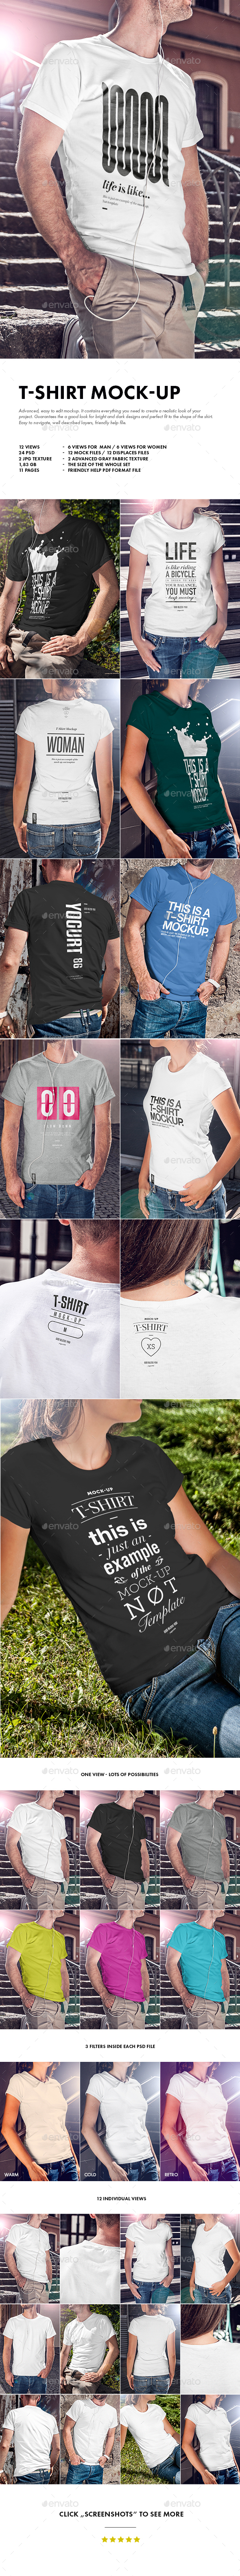 Graphicriver | T-Shirt Mock-up Free Download free download Graphicriver | T-Shirt Mock-up Free Download nulled Graphicriver | T-Shirt Mock-up Free Download